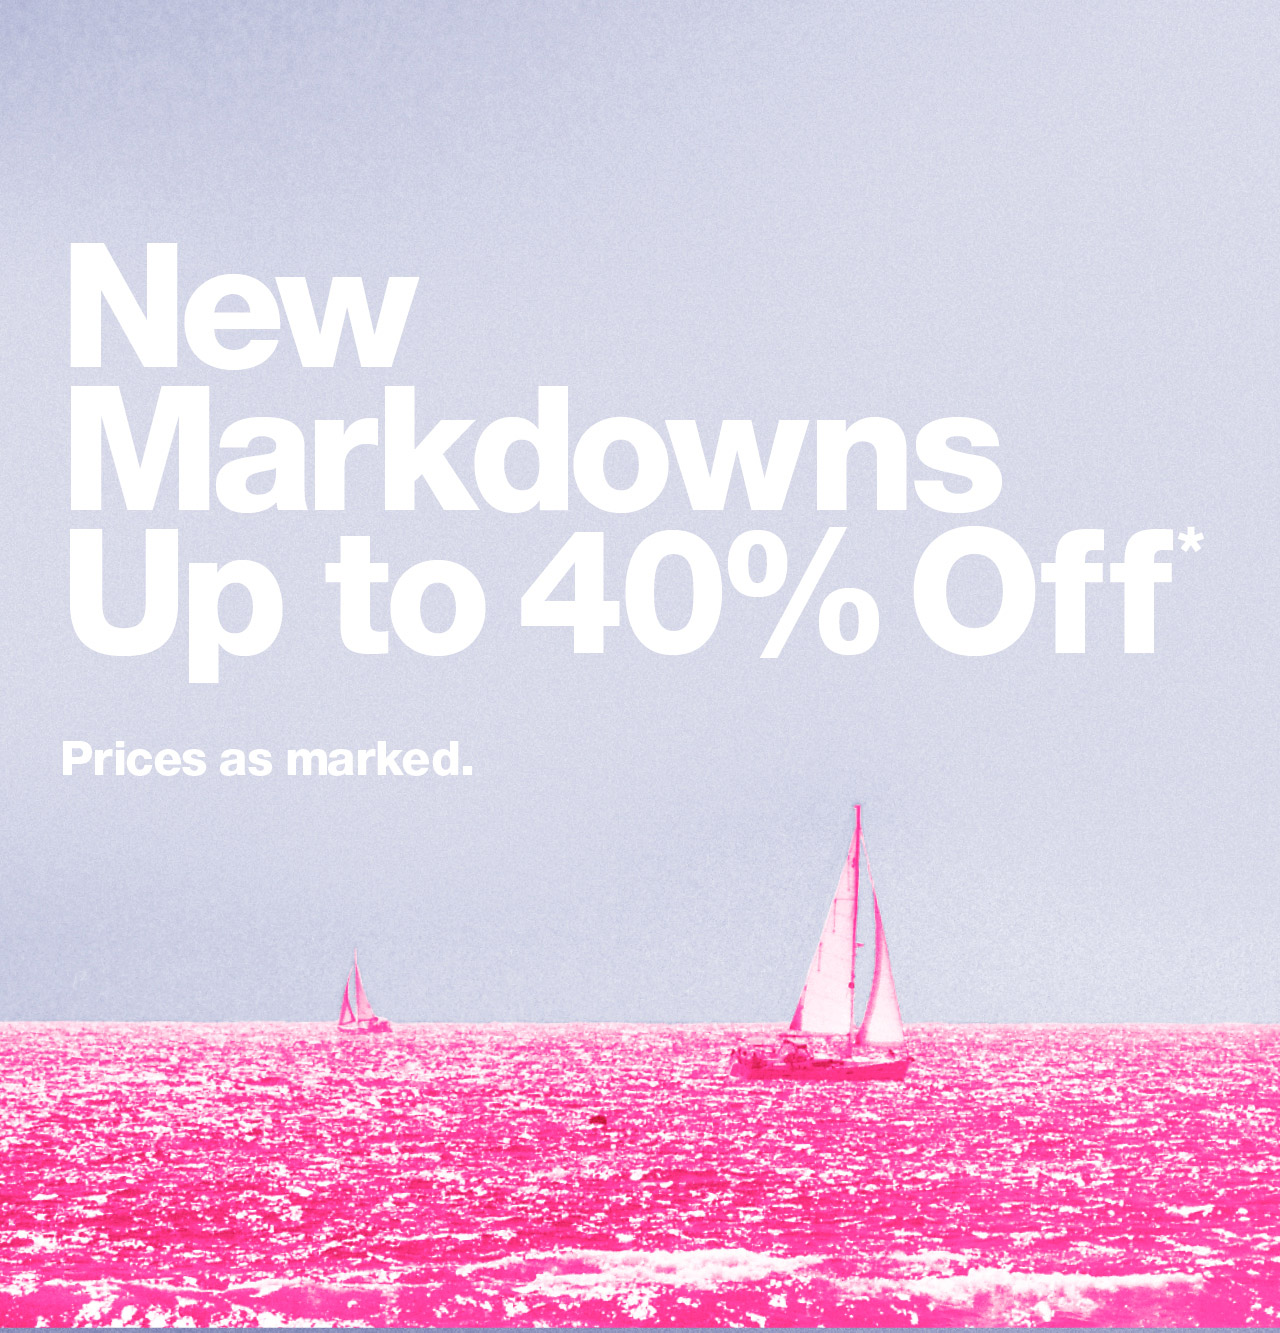 New Markdowns Up to 40% Off*